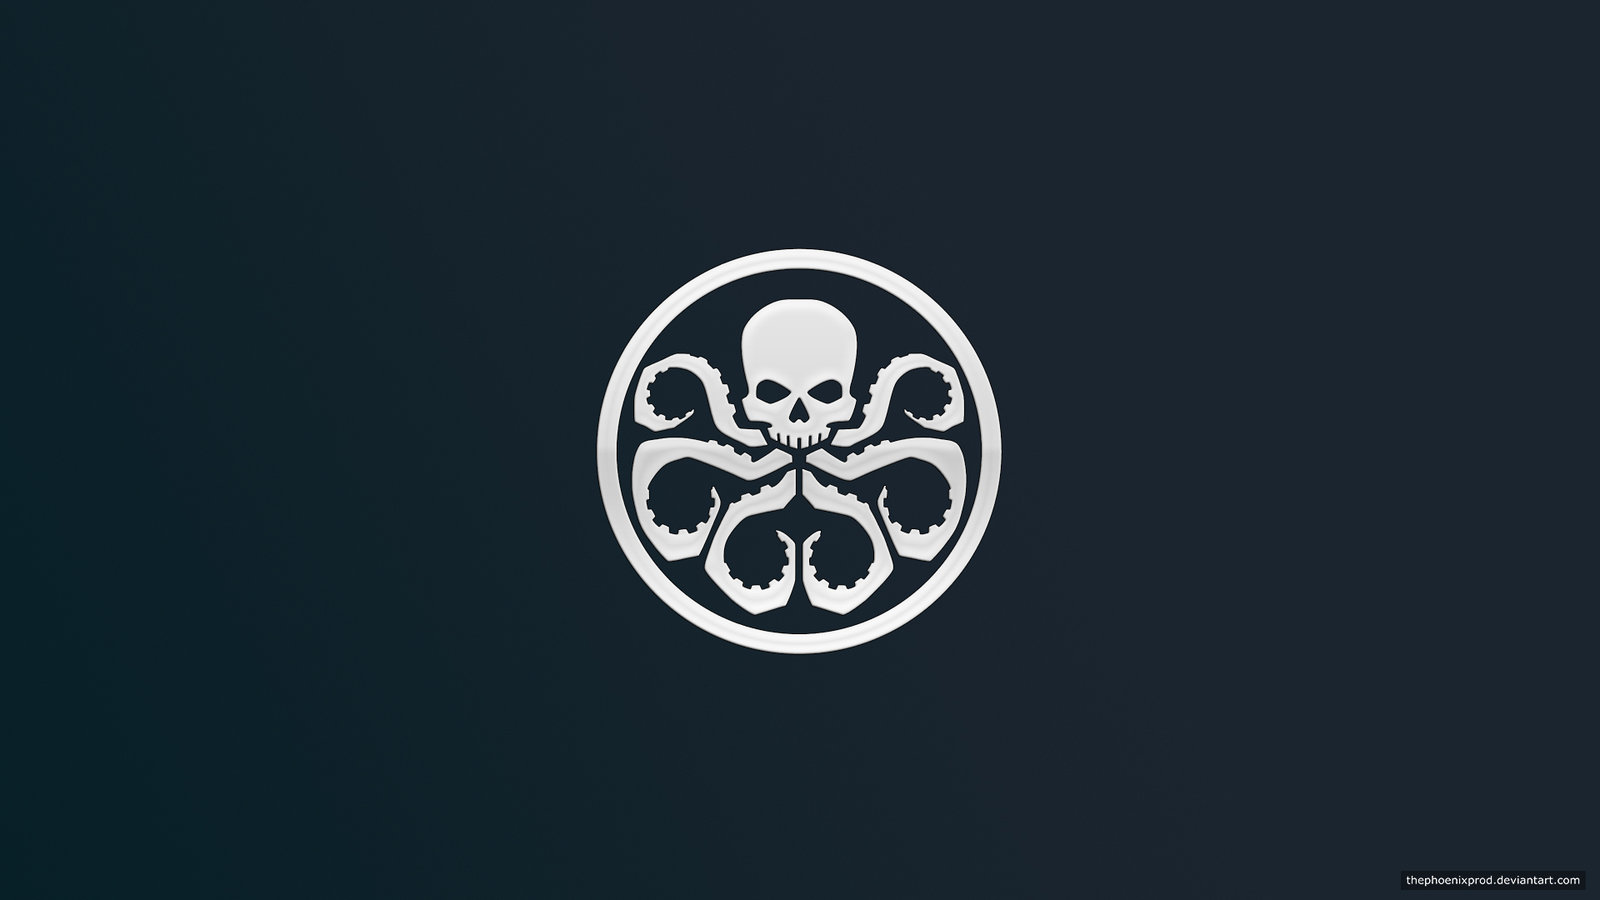 Best 54 Hydra Wallpaper On Hipwallpaper Marvel Hydra Wallpaper